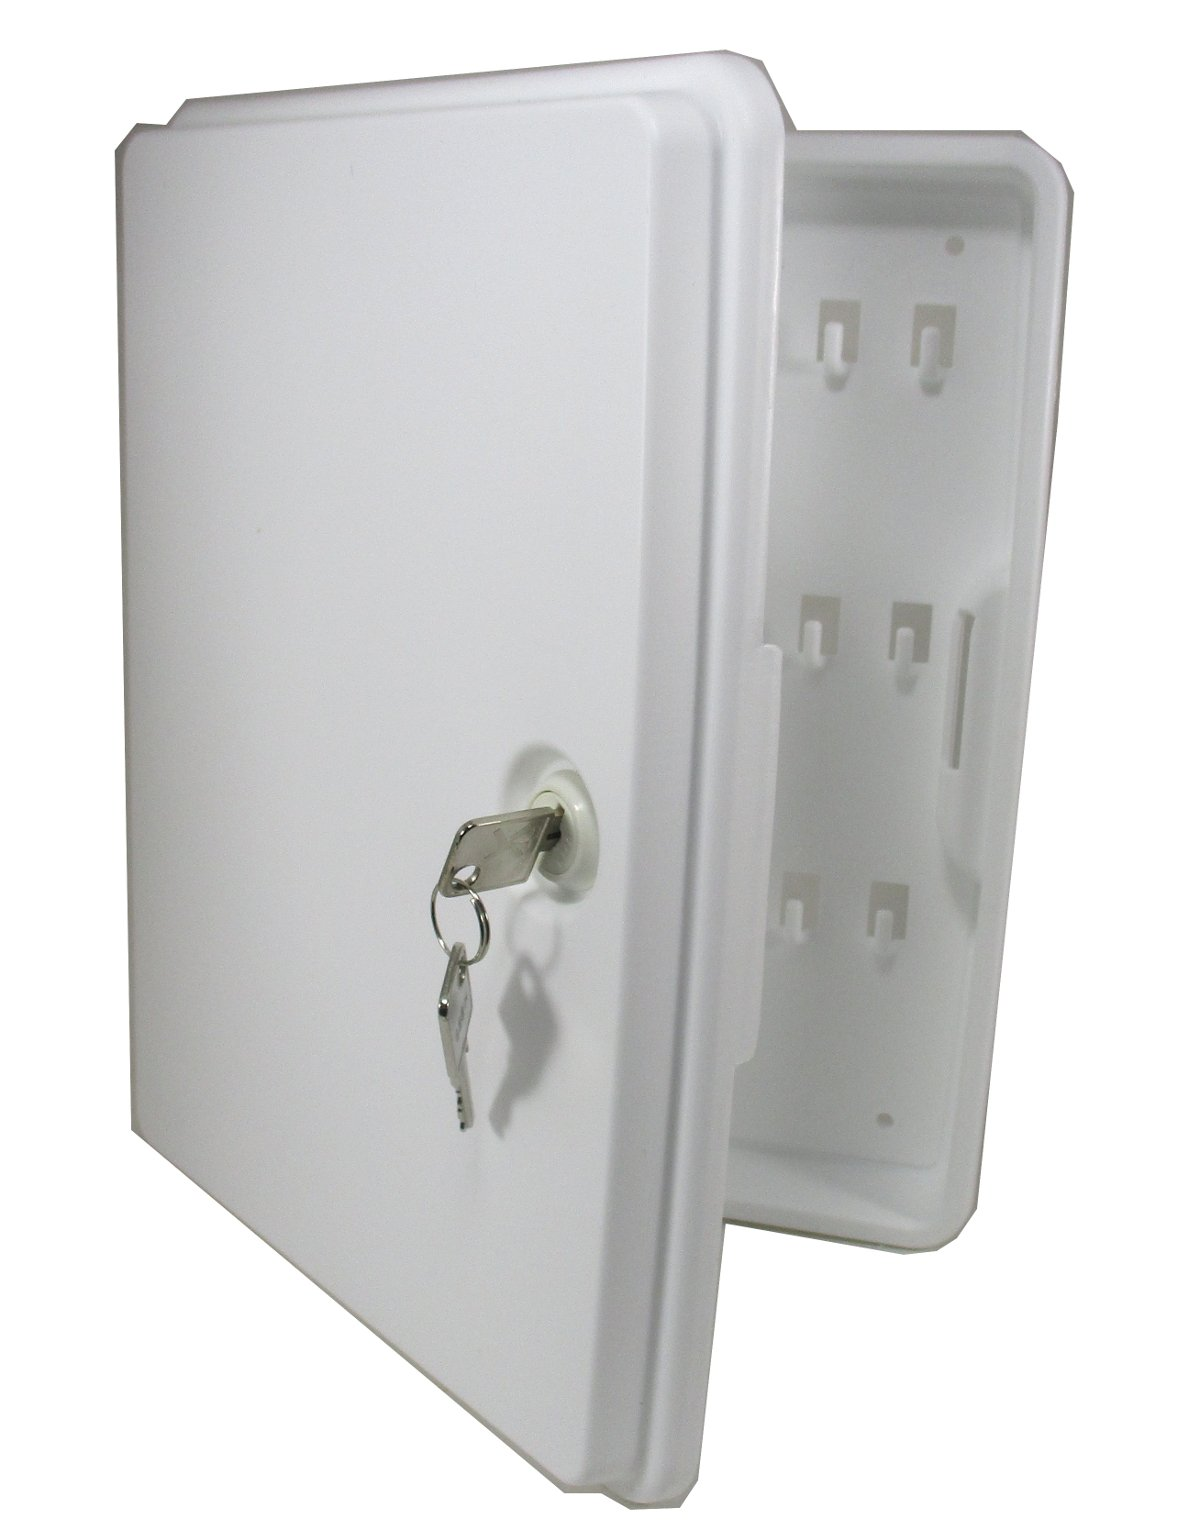 Locking Key Cabinet Holds 24 for Home Office or School White